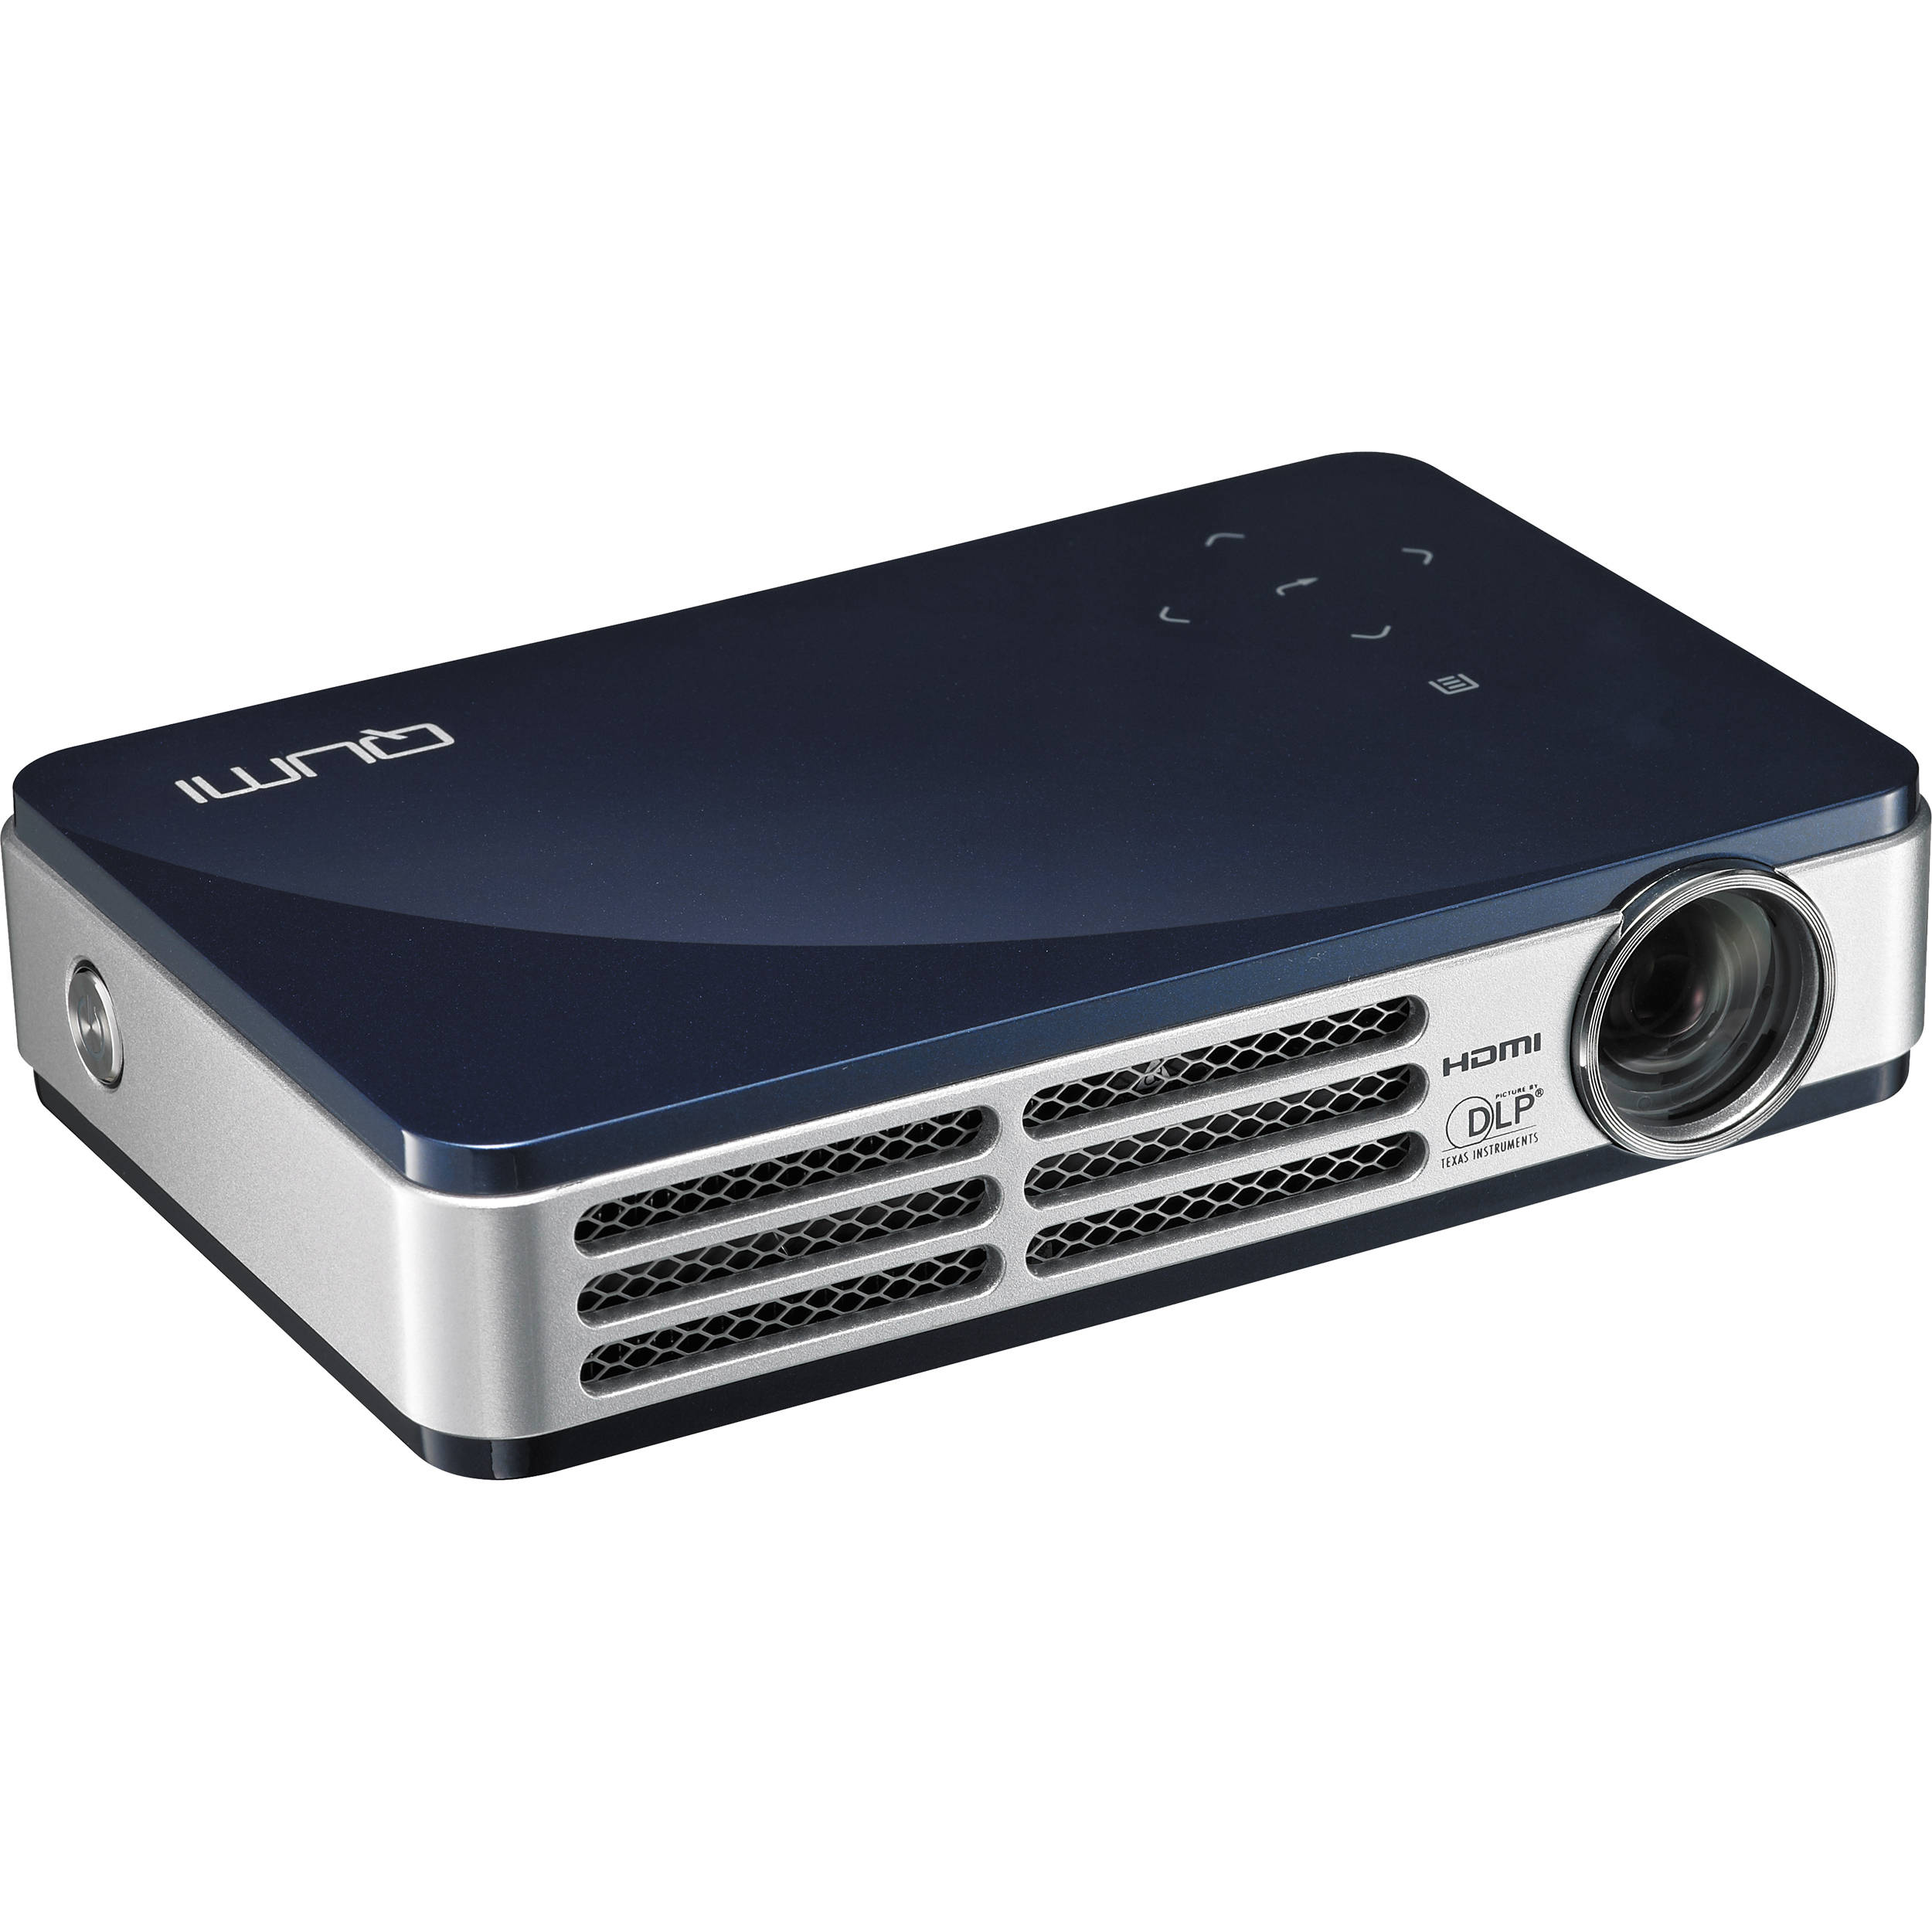 Vivitek qumi q5 super bright hd pocket projector 8 14964 for Hd projector